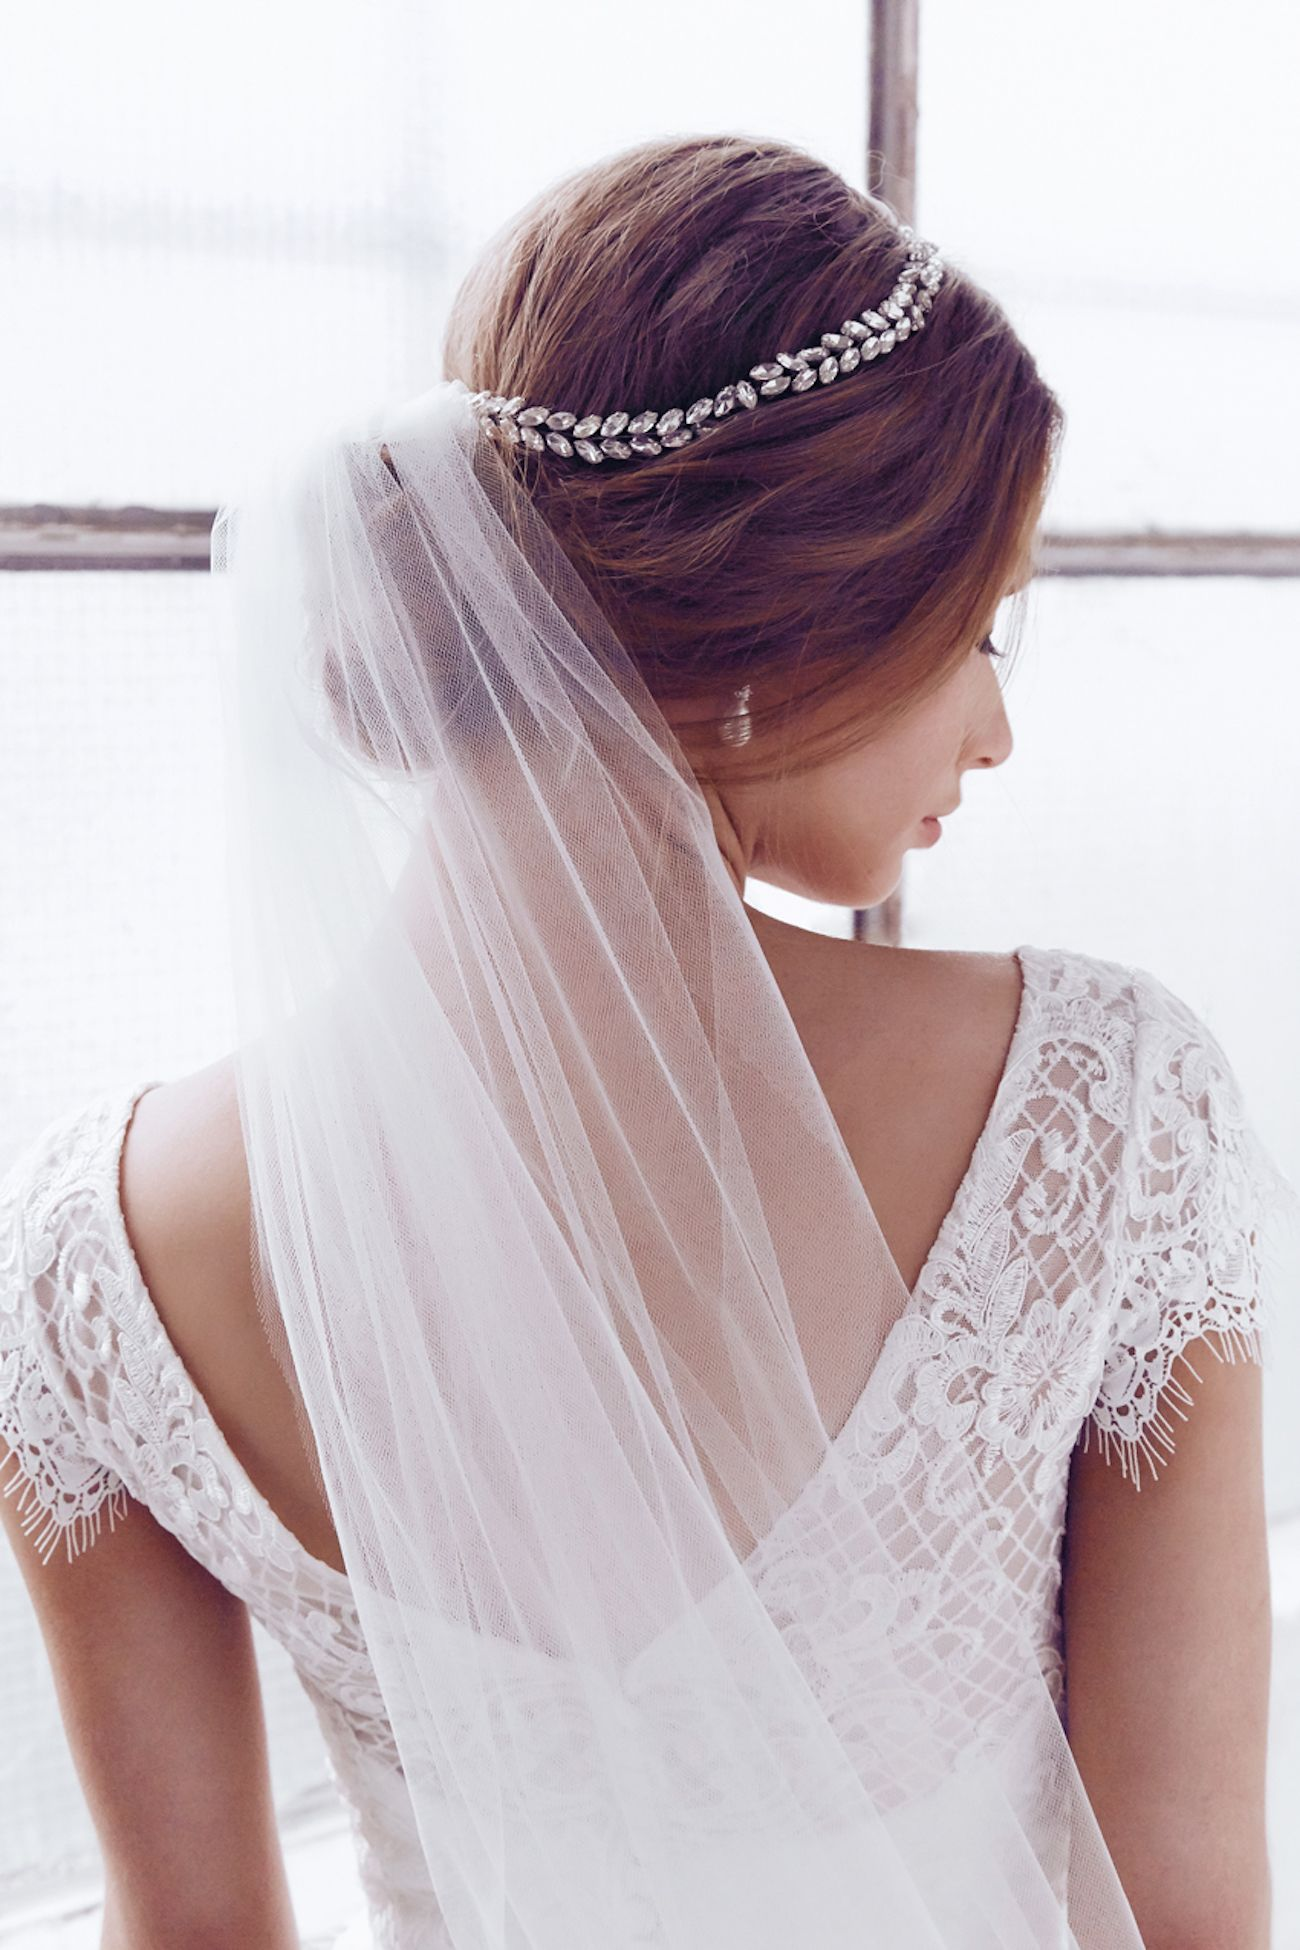 Anna Cbell Sparkly Embellished Alexandria Bridal Headpiece: Sparkly Accessories For Wedding Dress At Websimilar.org